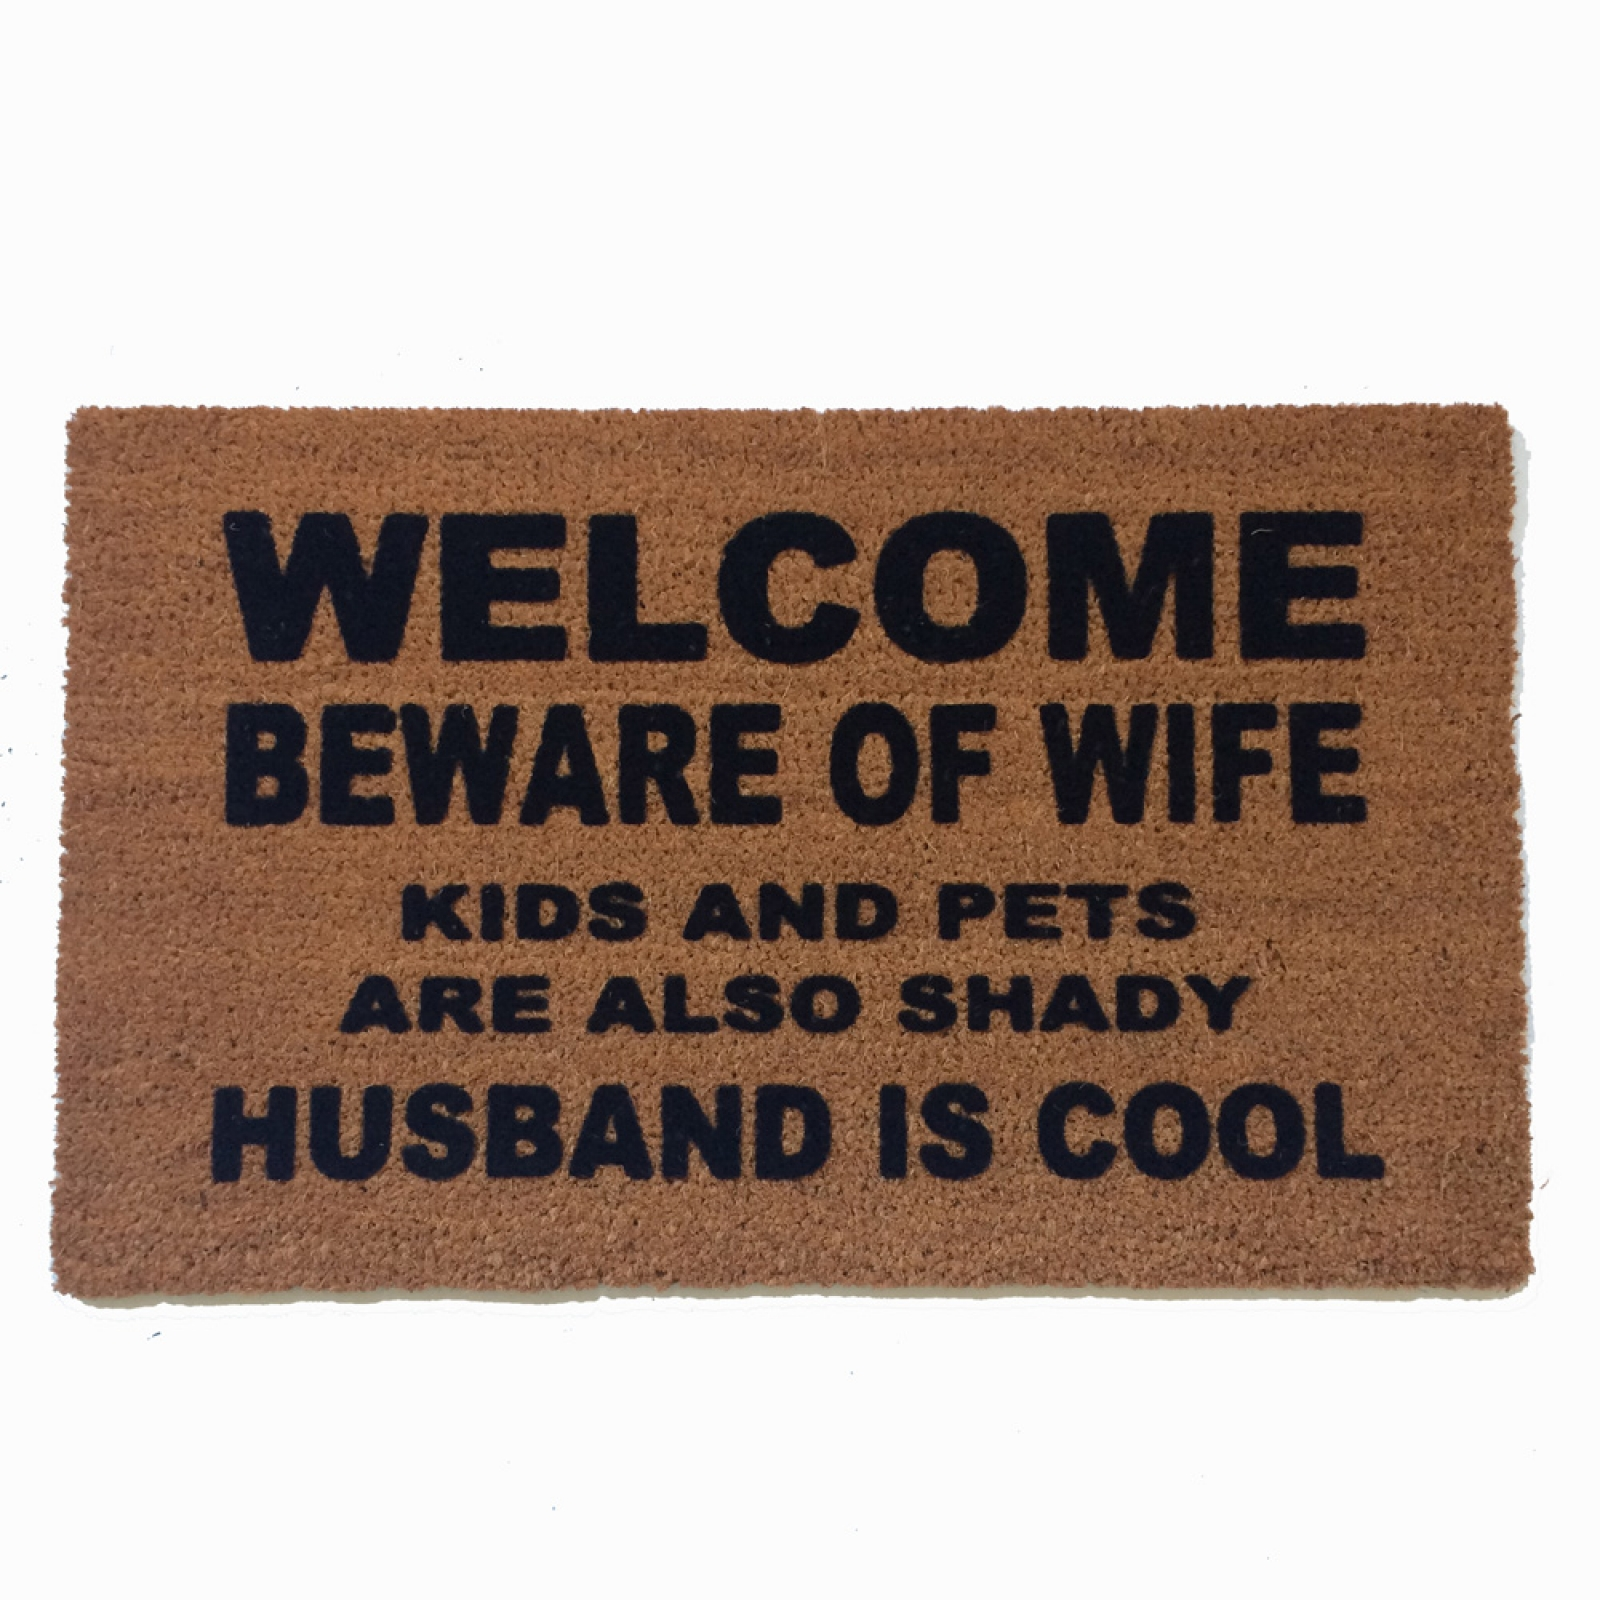 Funny Meme Beware Of Wife Kids And Pets Shady Dad Joke